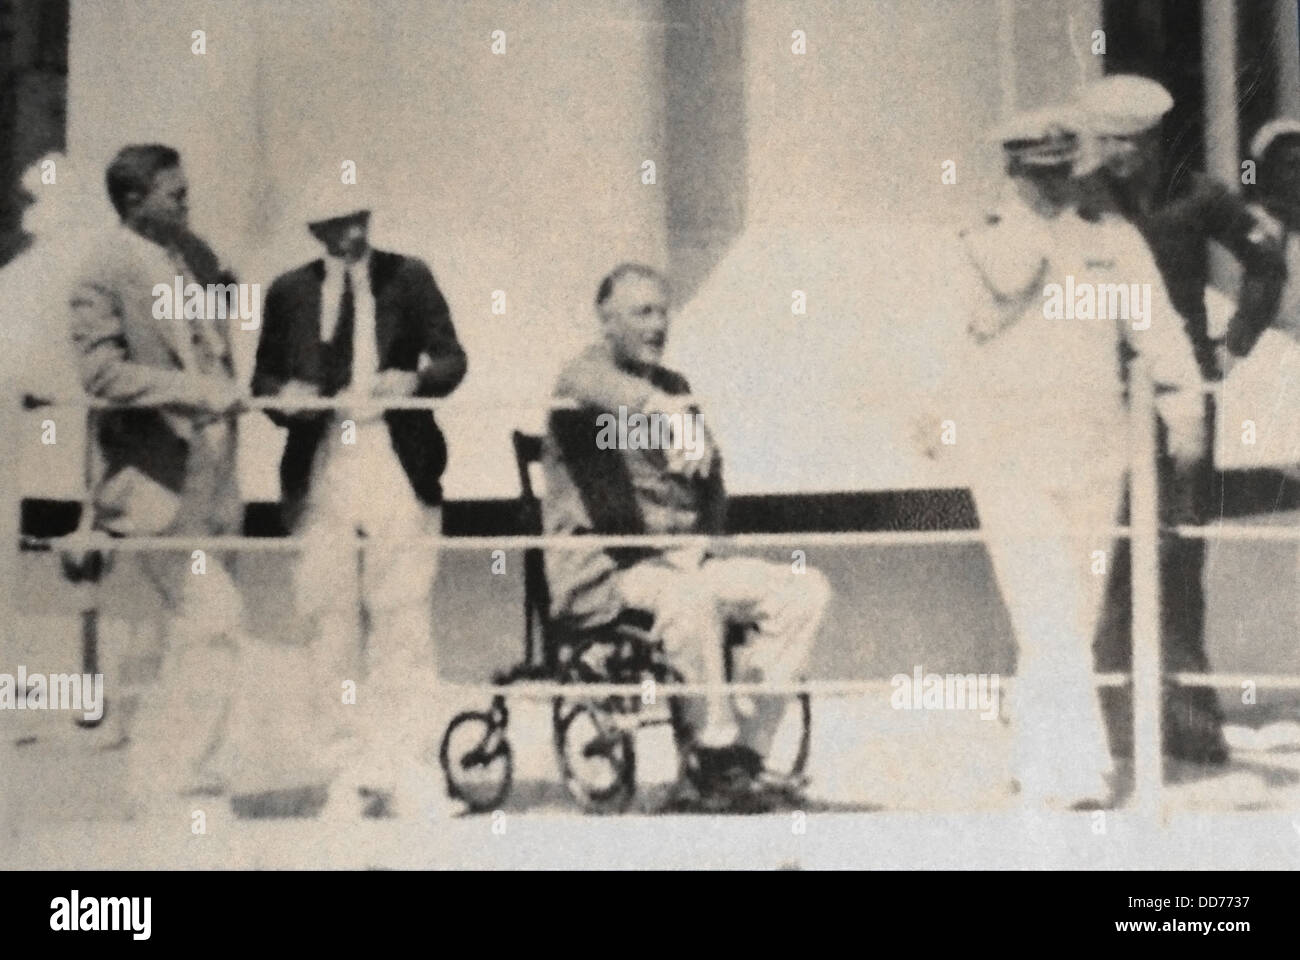 FDR in wheelchair aboard USS Indianapolis 1933 in photo by crewman Gerhard Stoeckel, Sr. On far left are Gus Gennerich Stock Photo